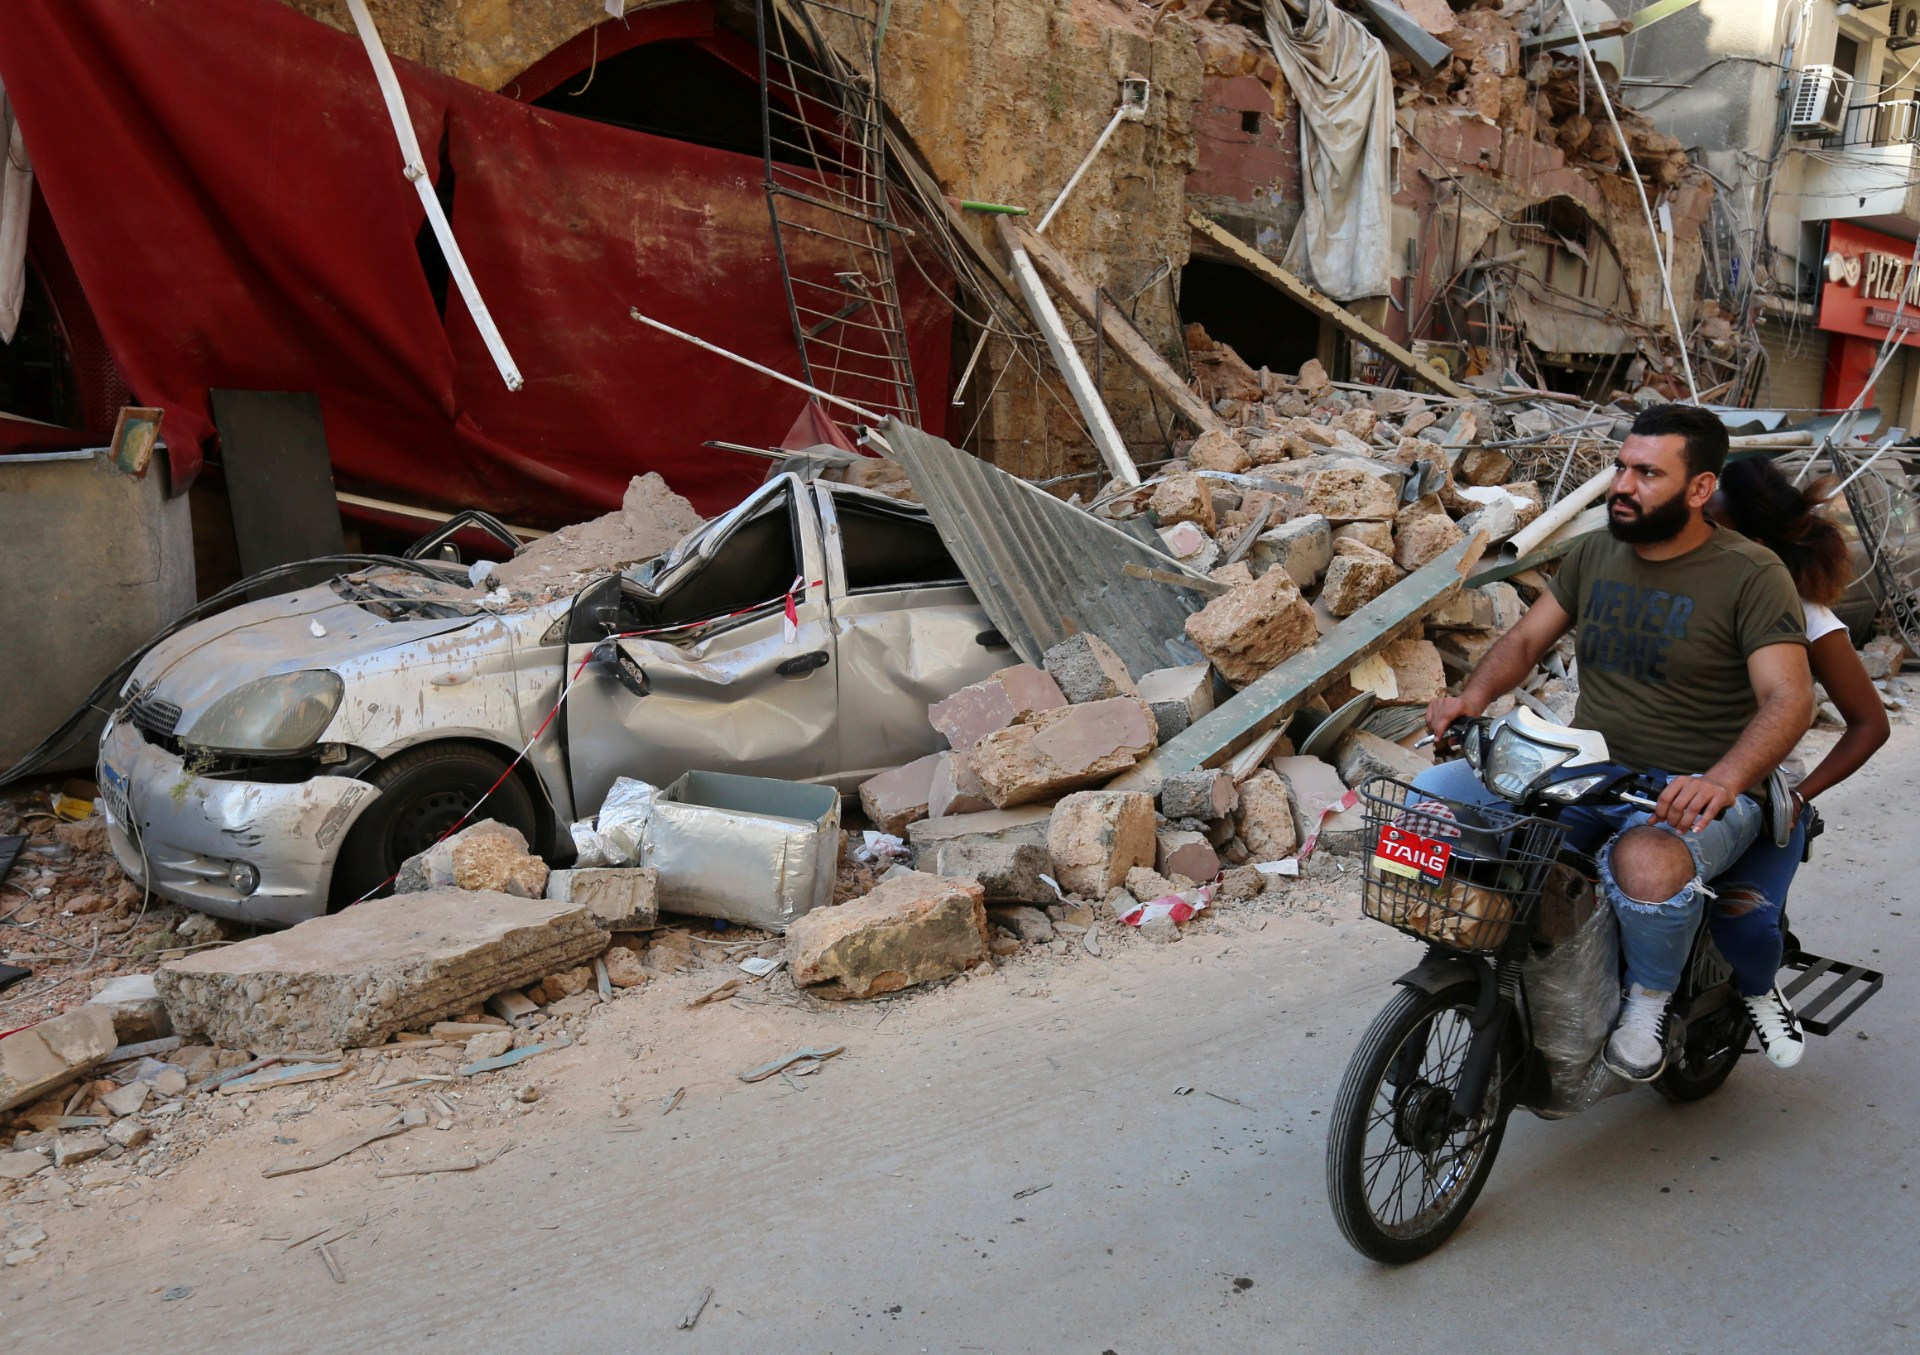 A man rides on a motorbike near rubble from damaged buildings in Gemmayzeh (Reuters)